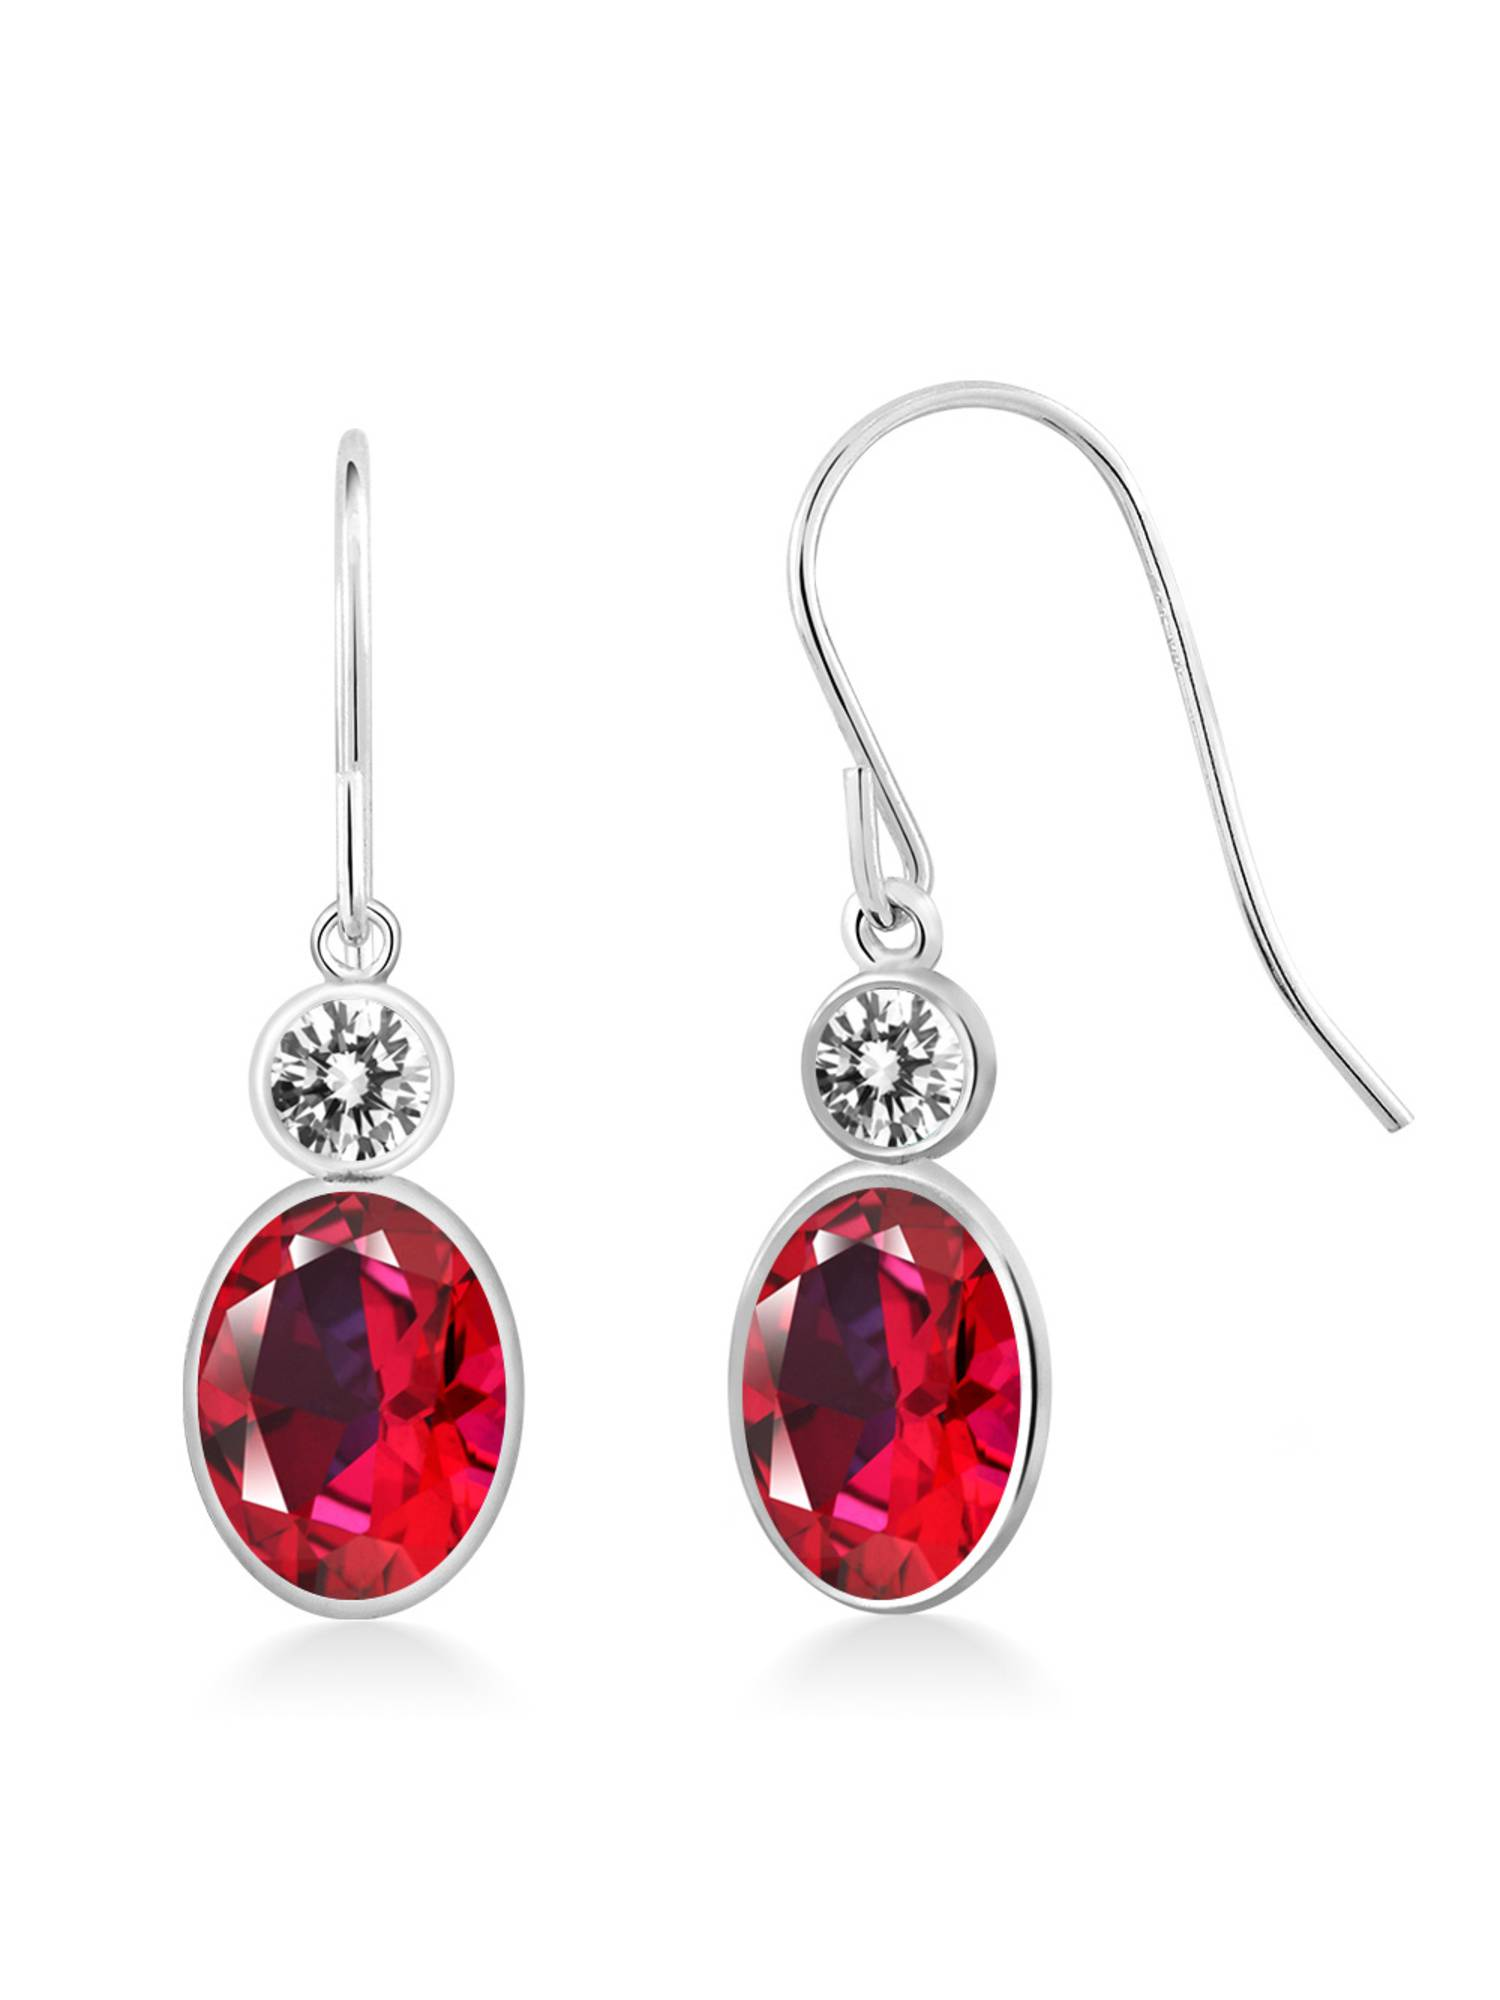 14K White Gold Diamond Earrings Set with Blazing Red Topaz from Swarvoski by